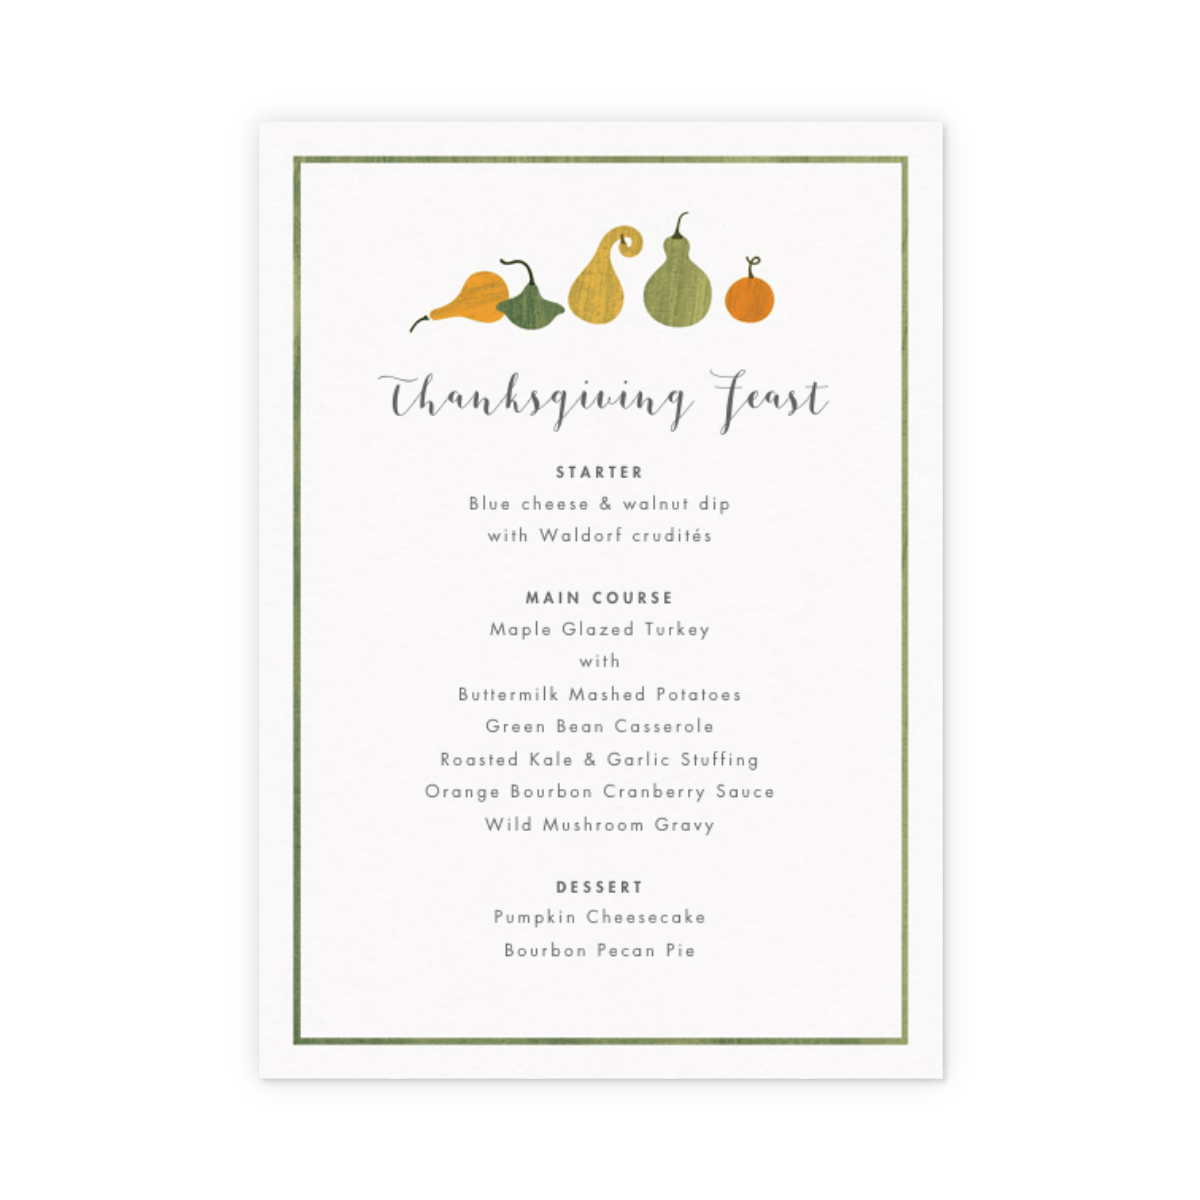 Https%3a%2f%2fwww.papier.com%2fproduct image%2f12309%2f4%2fthanksgiving gourds 3099 front 1573125940.png?ixlib=rb 1.1